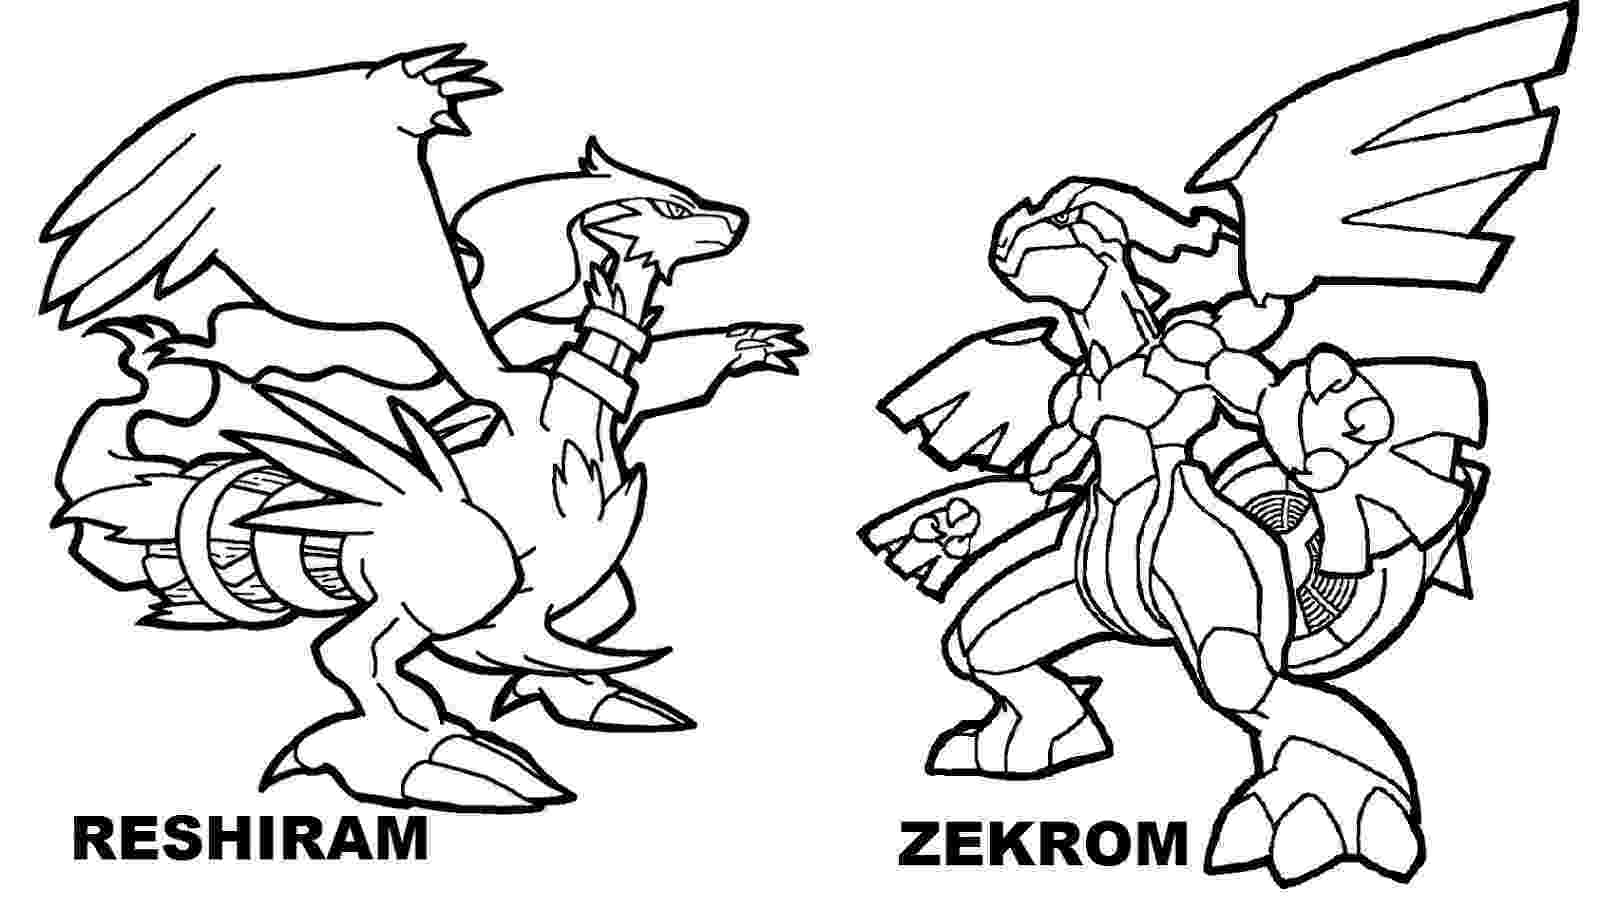 pokemon pictures of pokemon black and white free legendary pokemon coloring pages for kids of pokemon black pictures pokemon white and